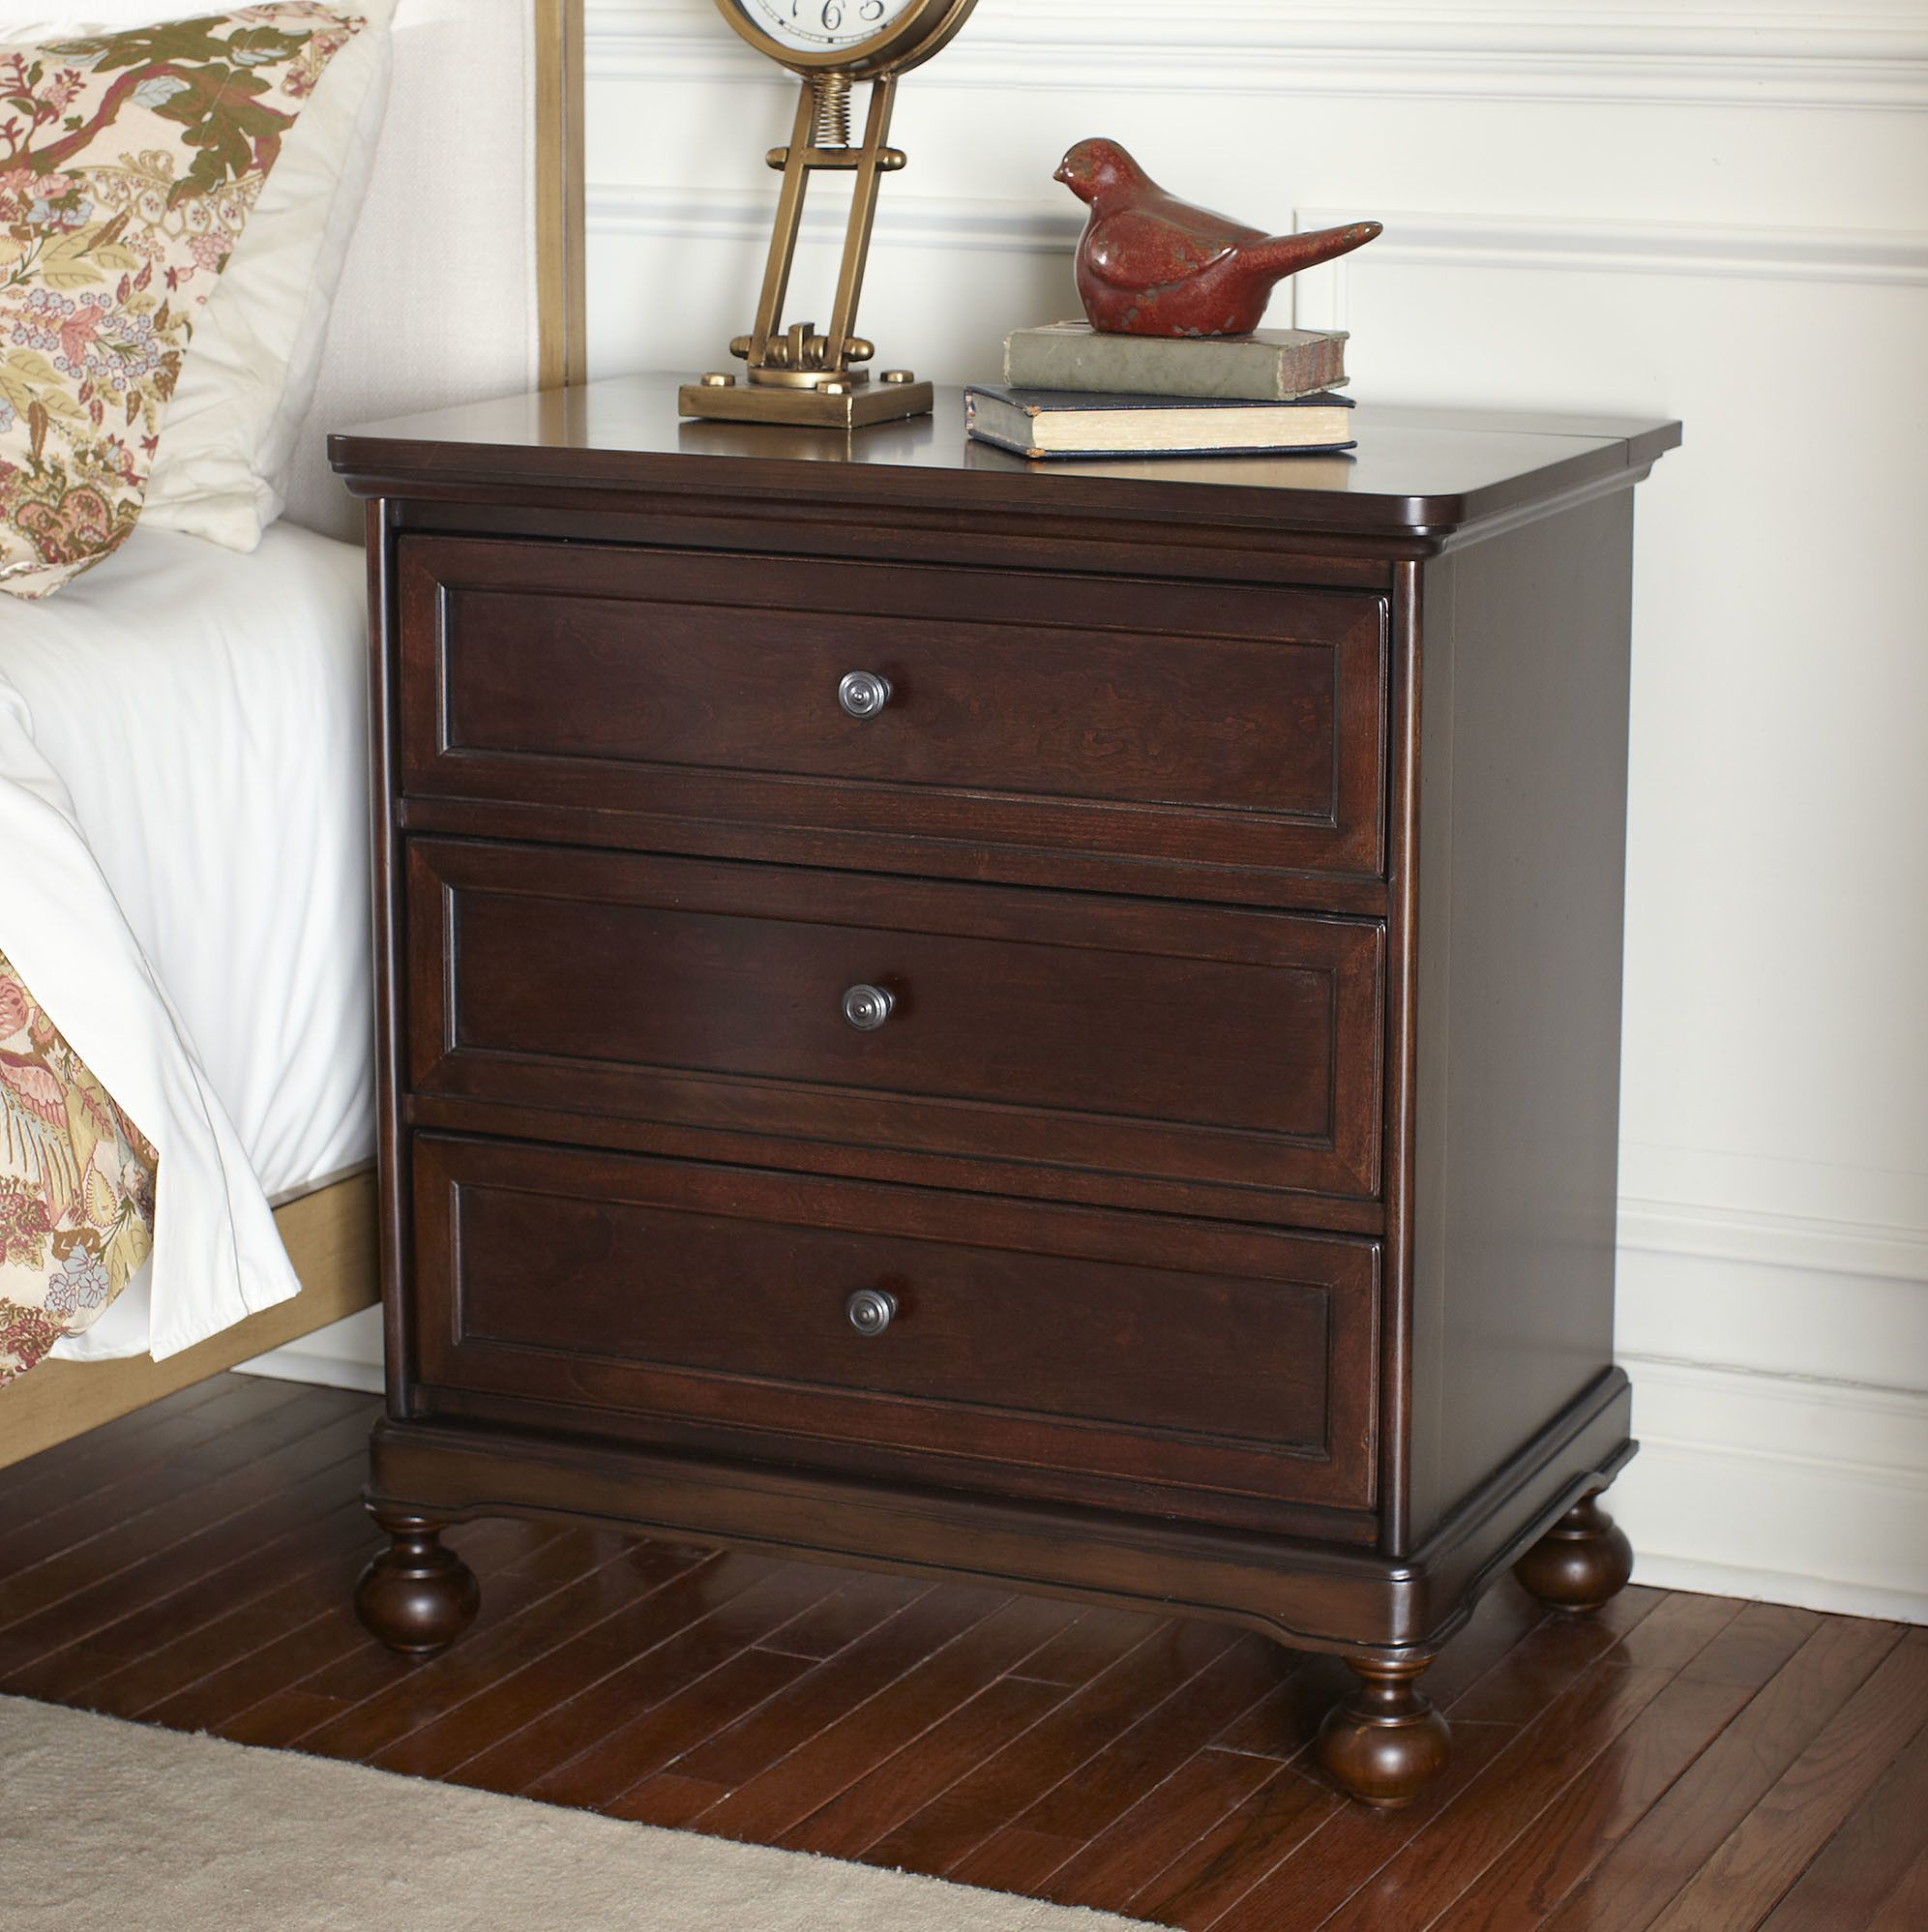 Patmore nightstand products pinterest nightstands and products